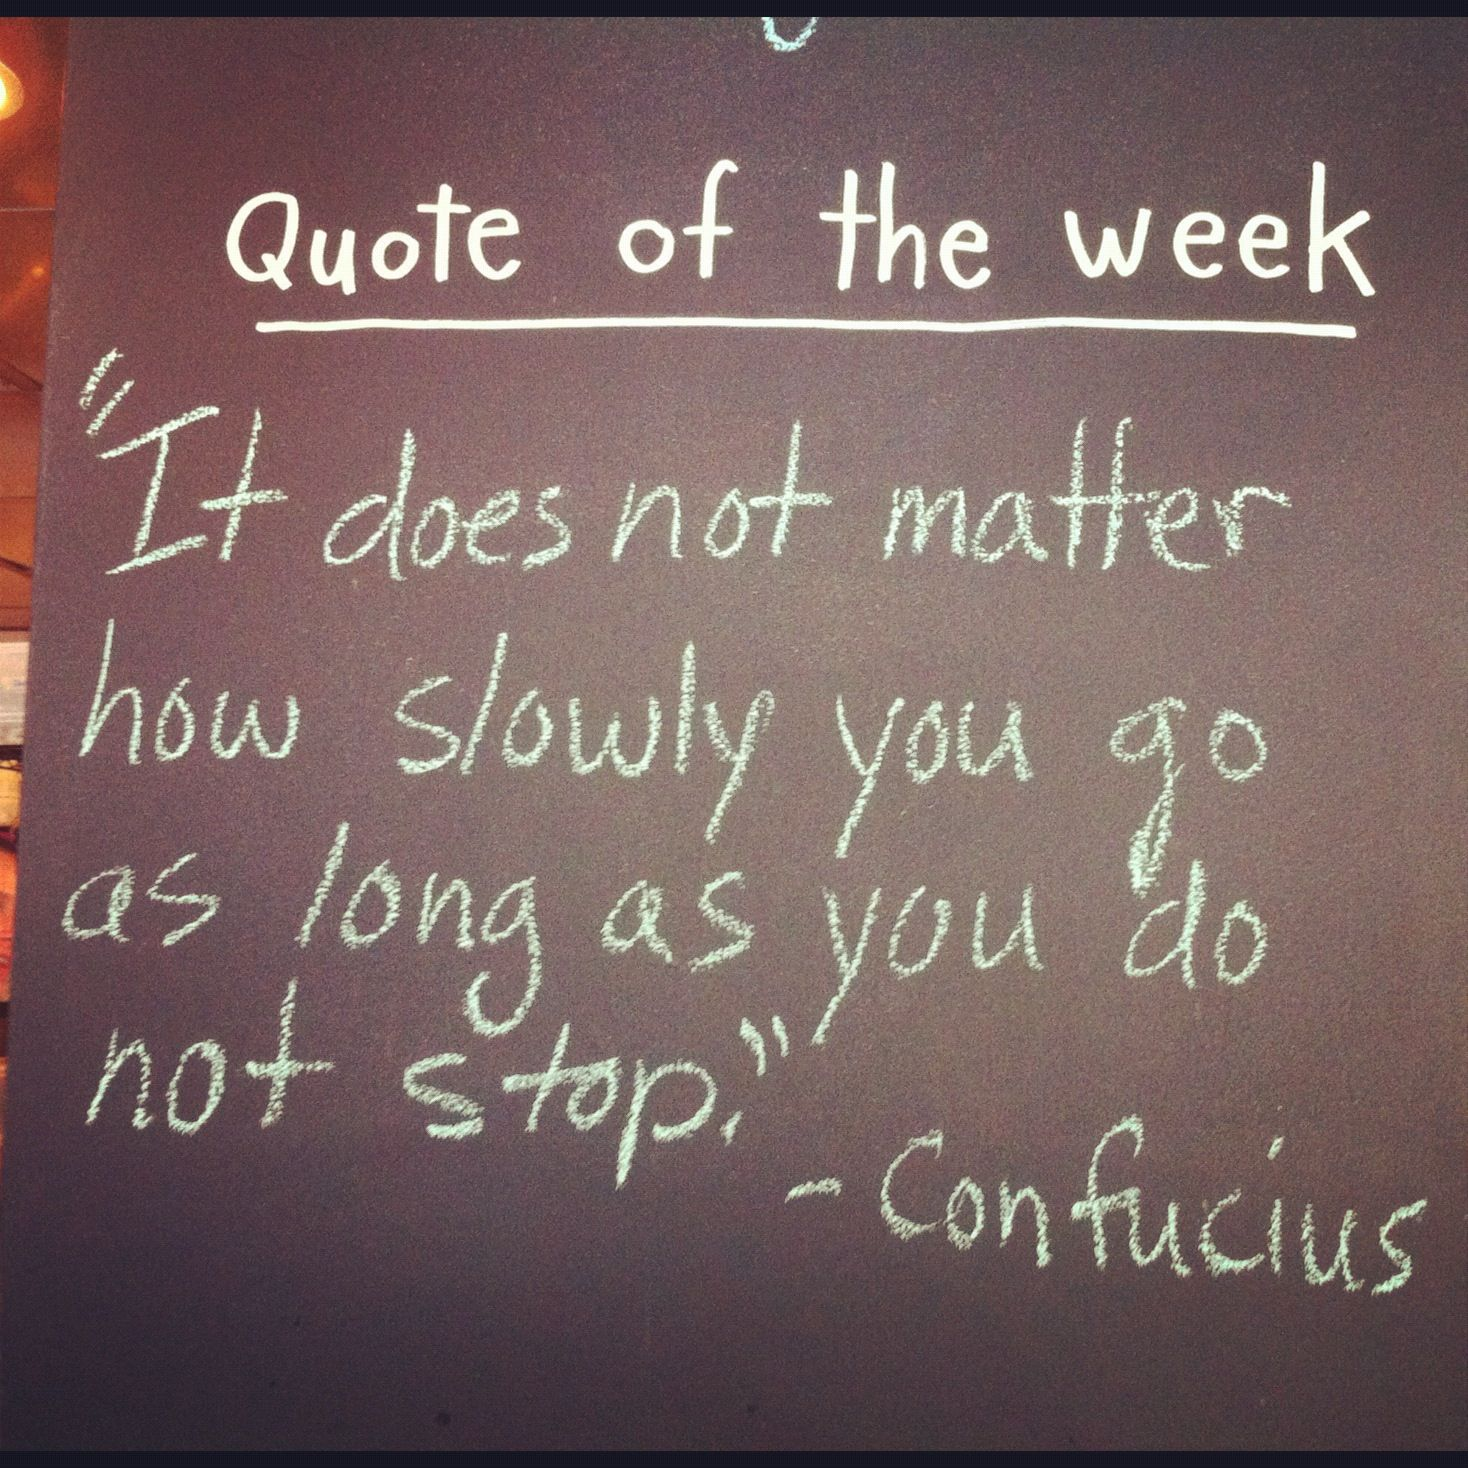 confucius quotes A collection of quotes attributed to the ancient chinese philosopher confucius.